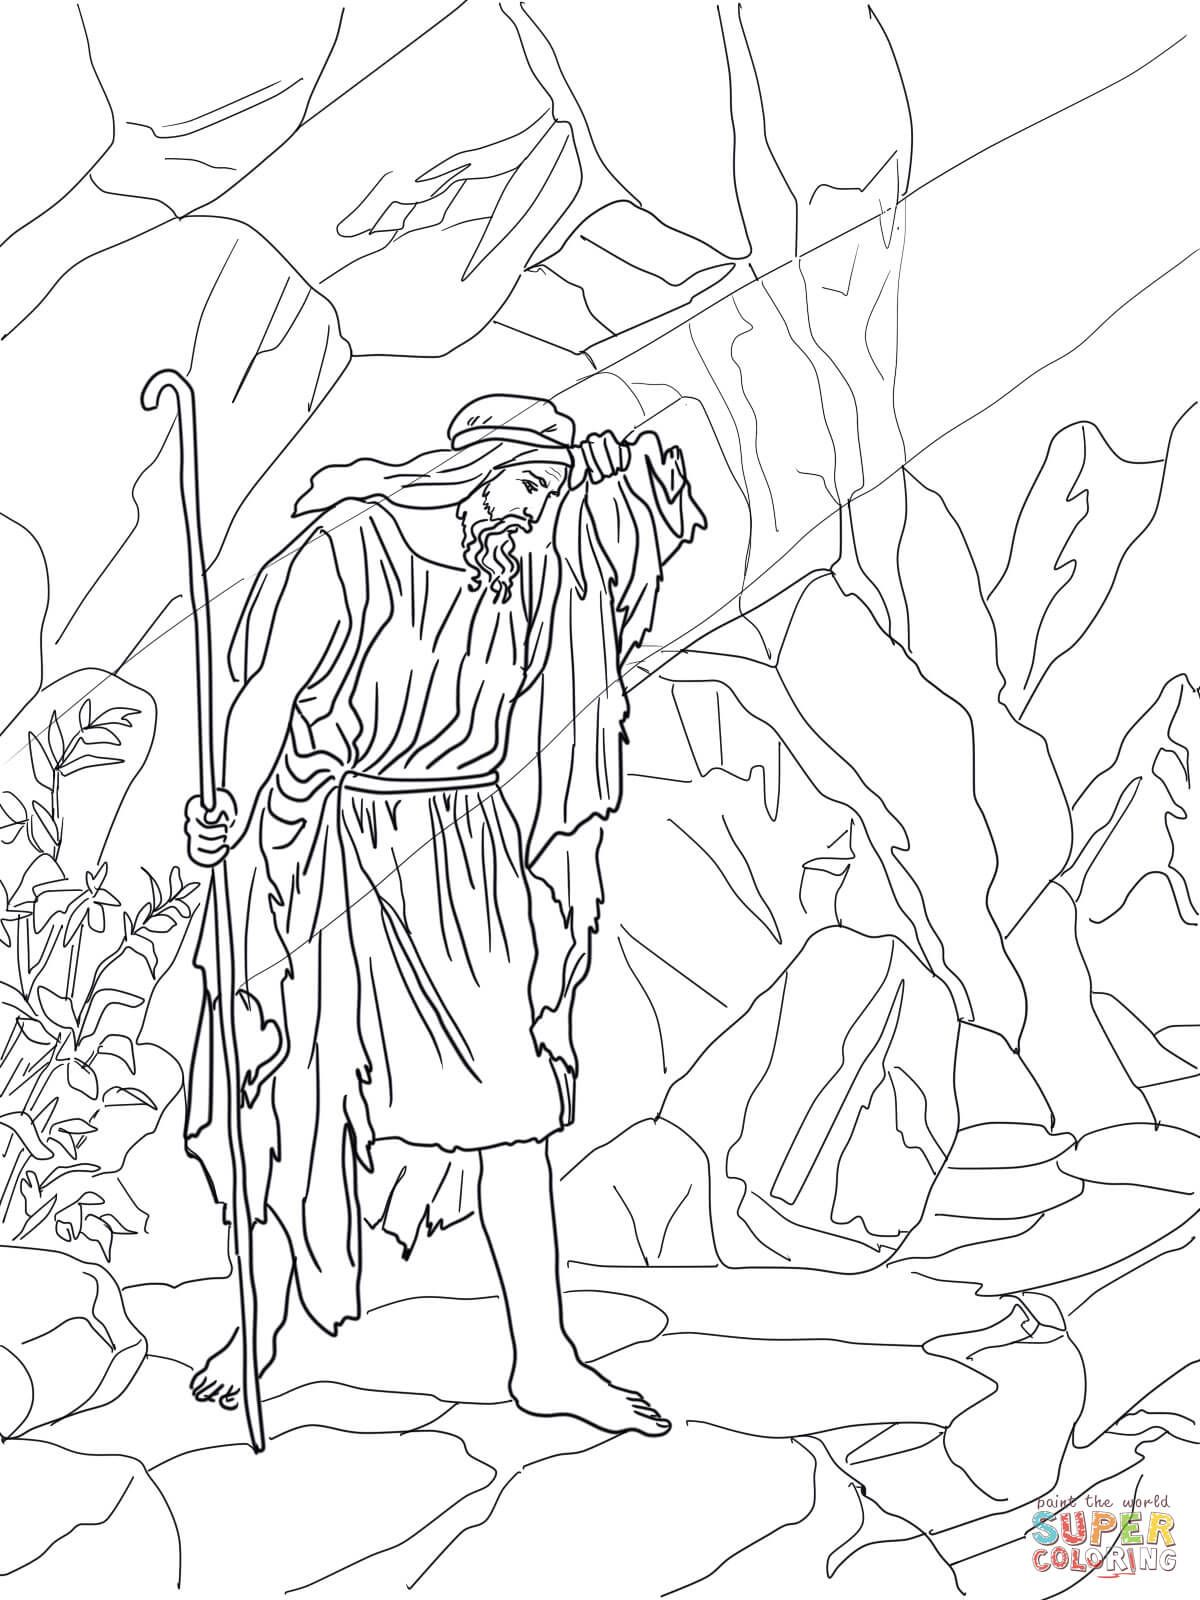 God Speaks To Elijah Coloring Page Free Printable Coloring Pages